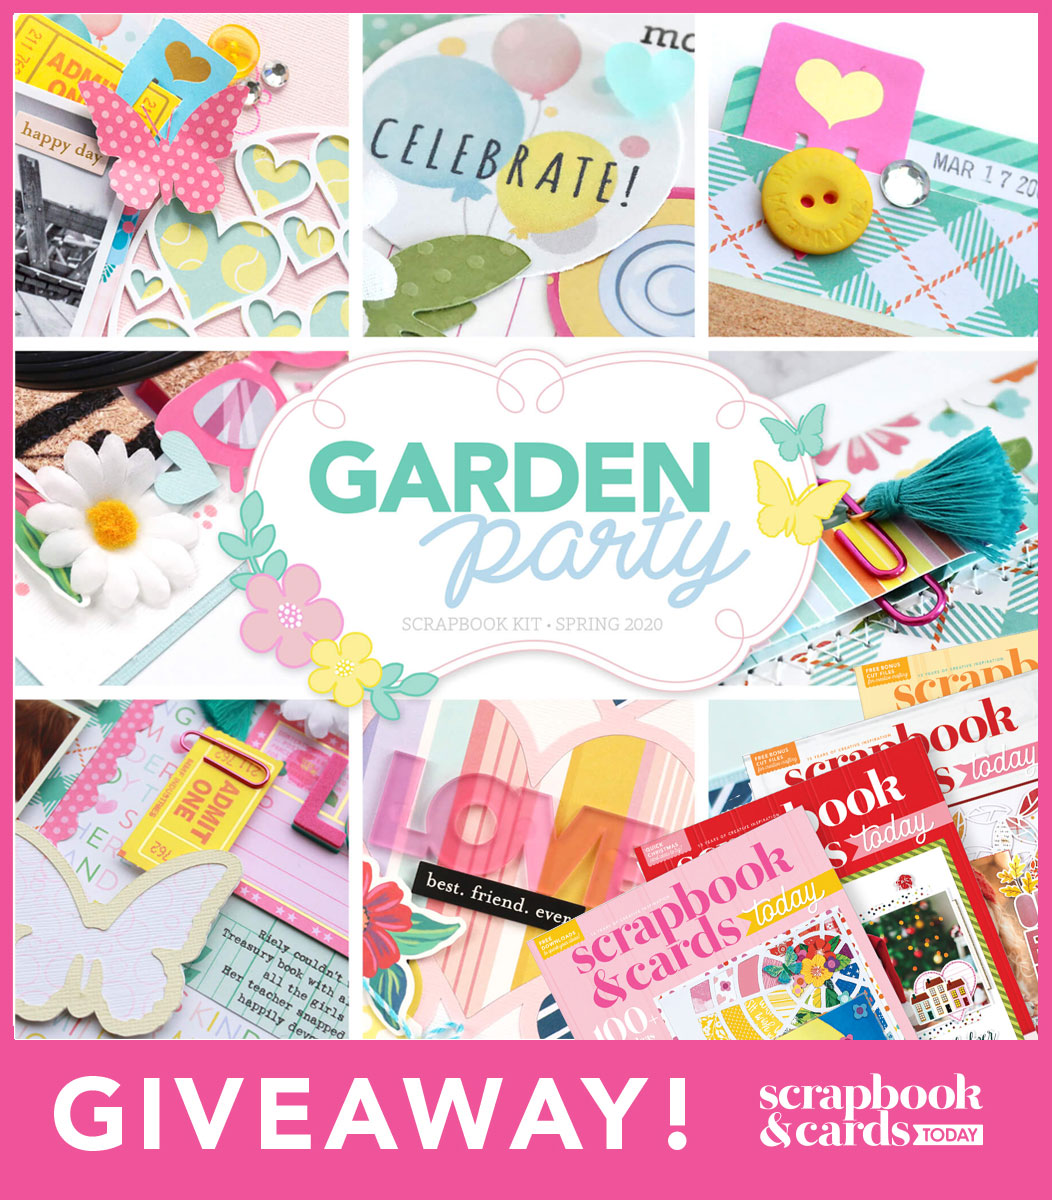 Scrapbook & Cards Today prize pack